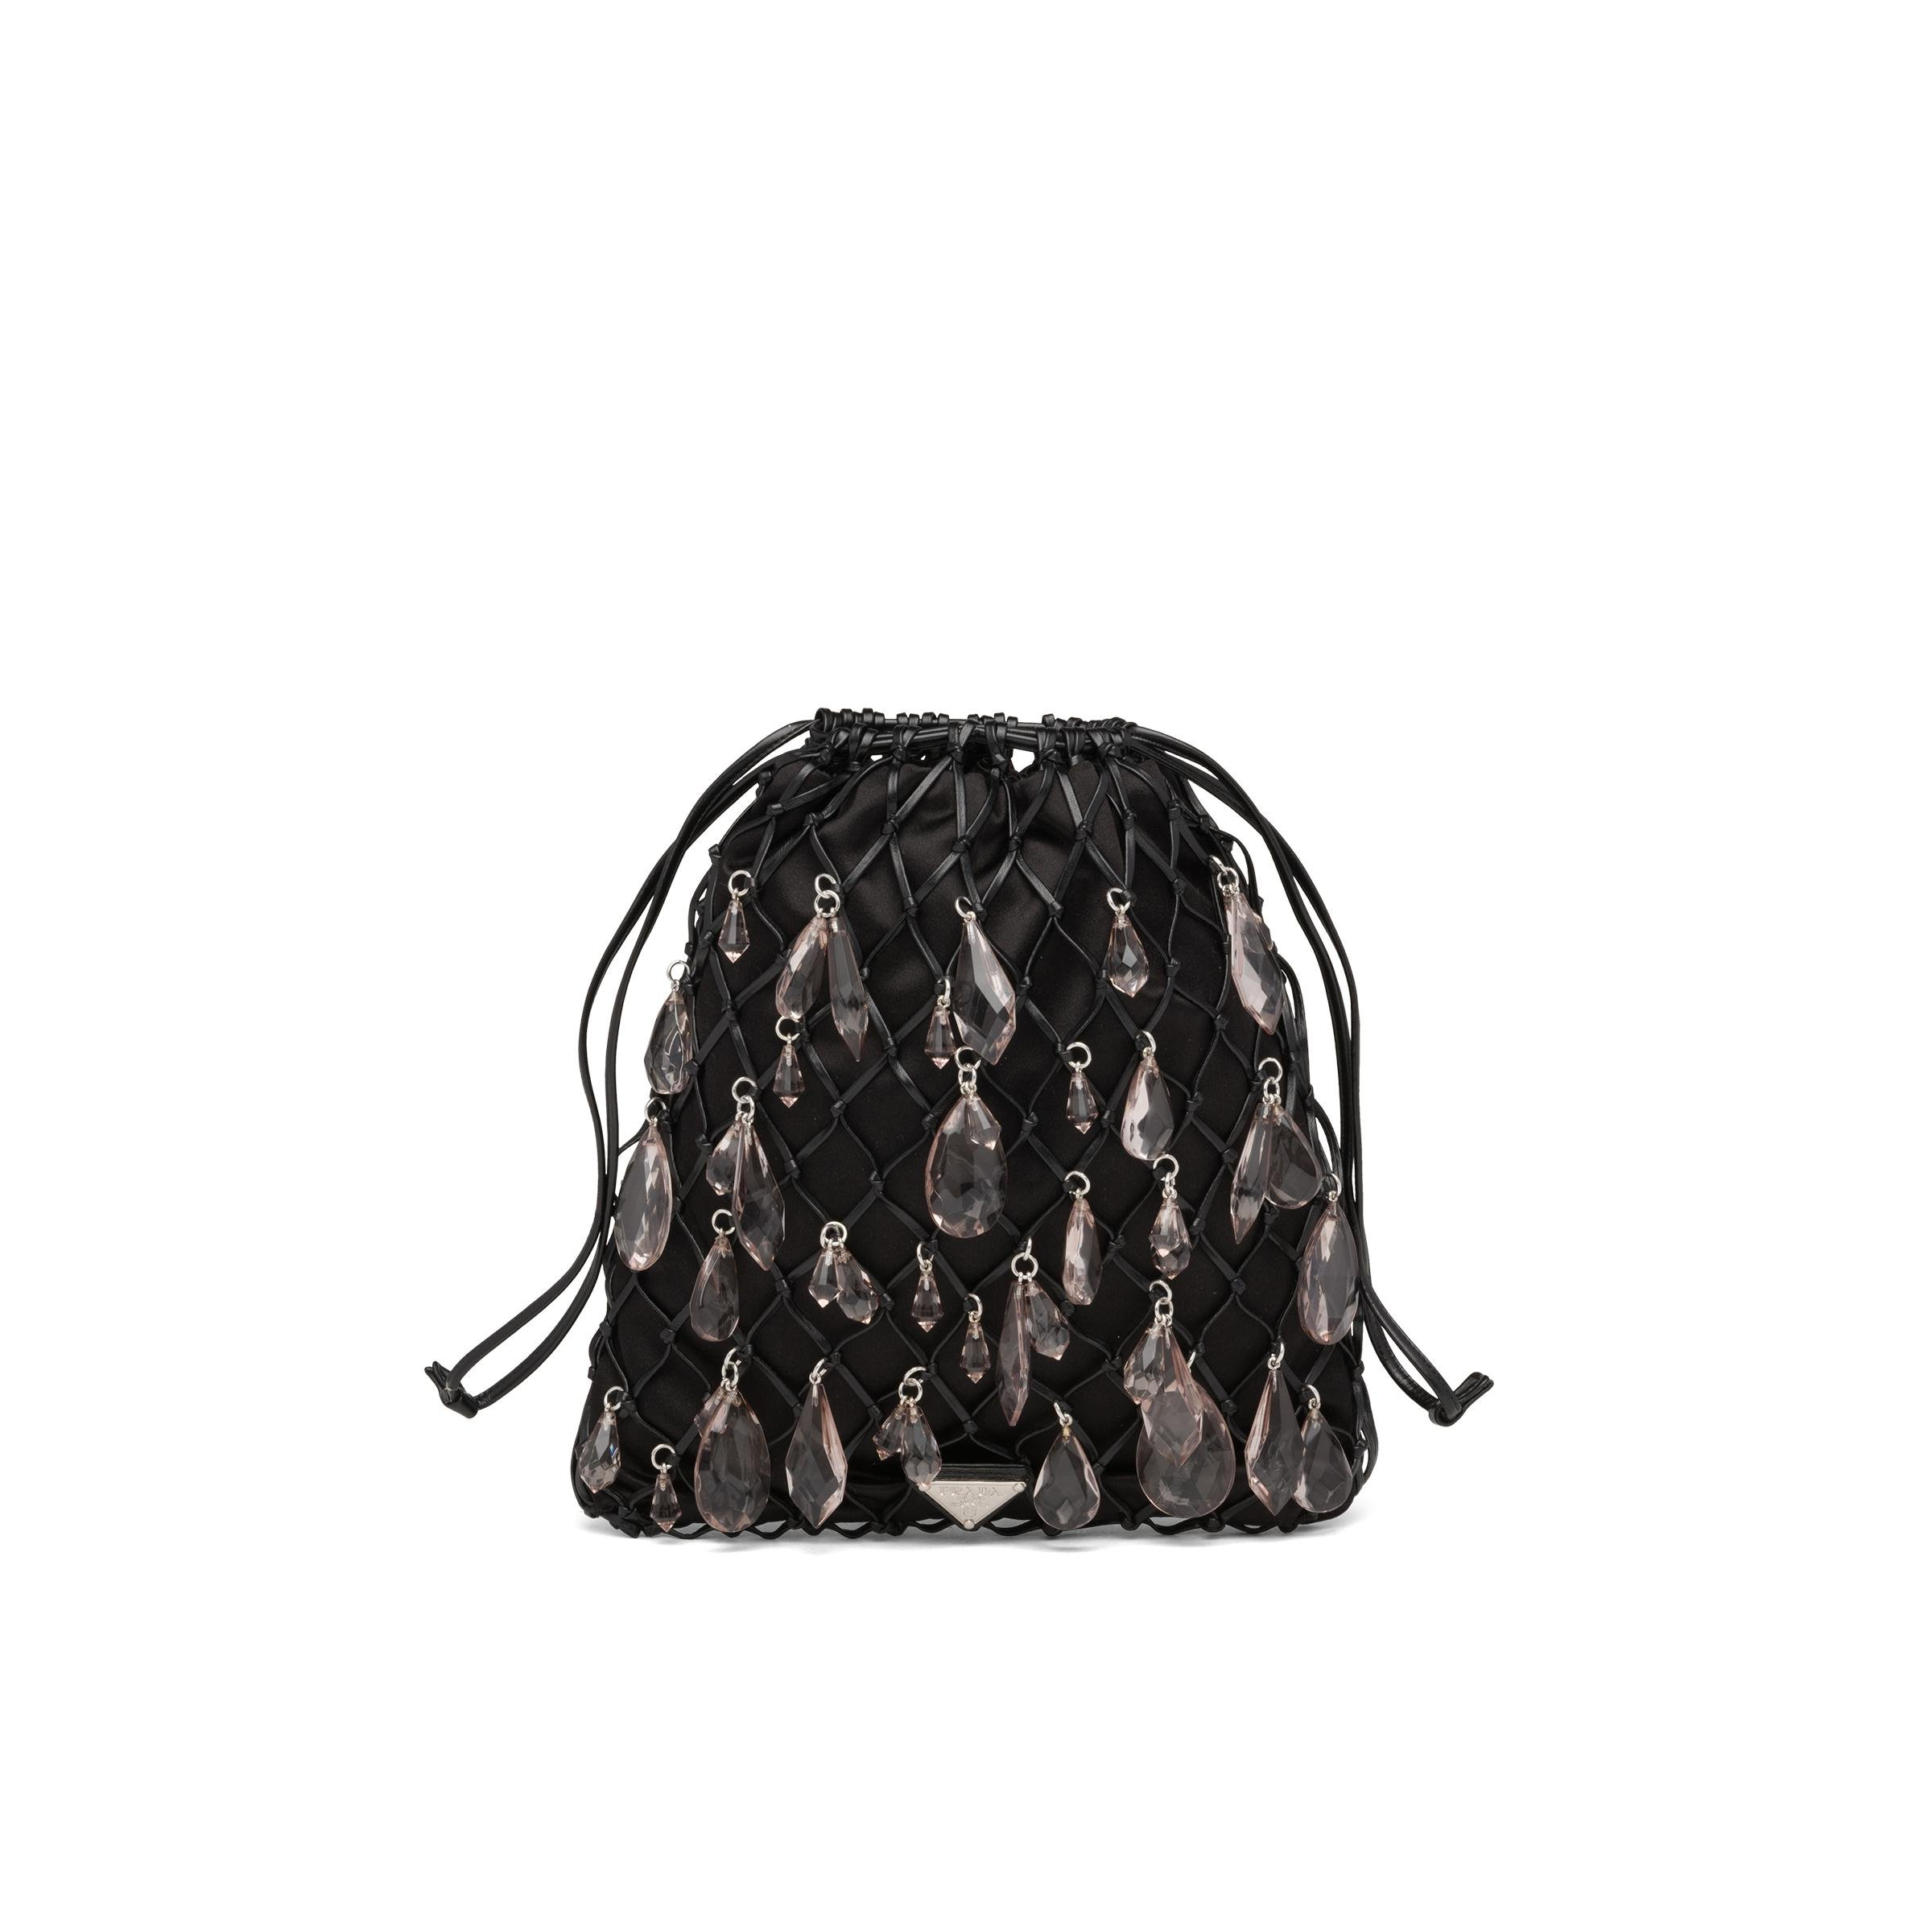 Leather Mesh And Satin Clutch Women Black